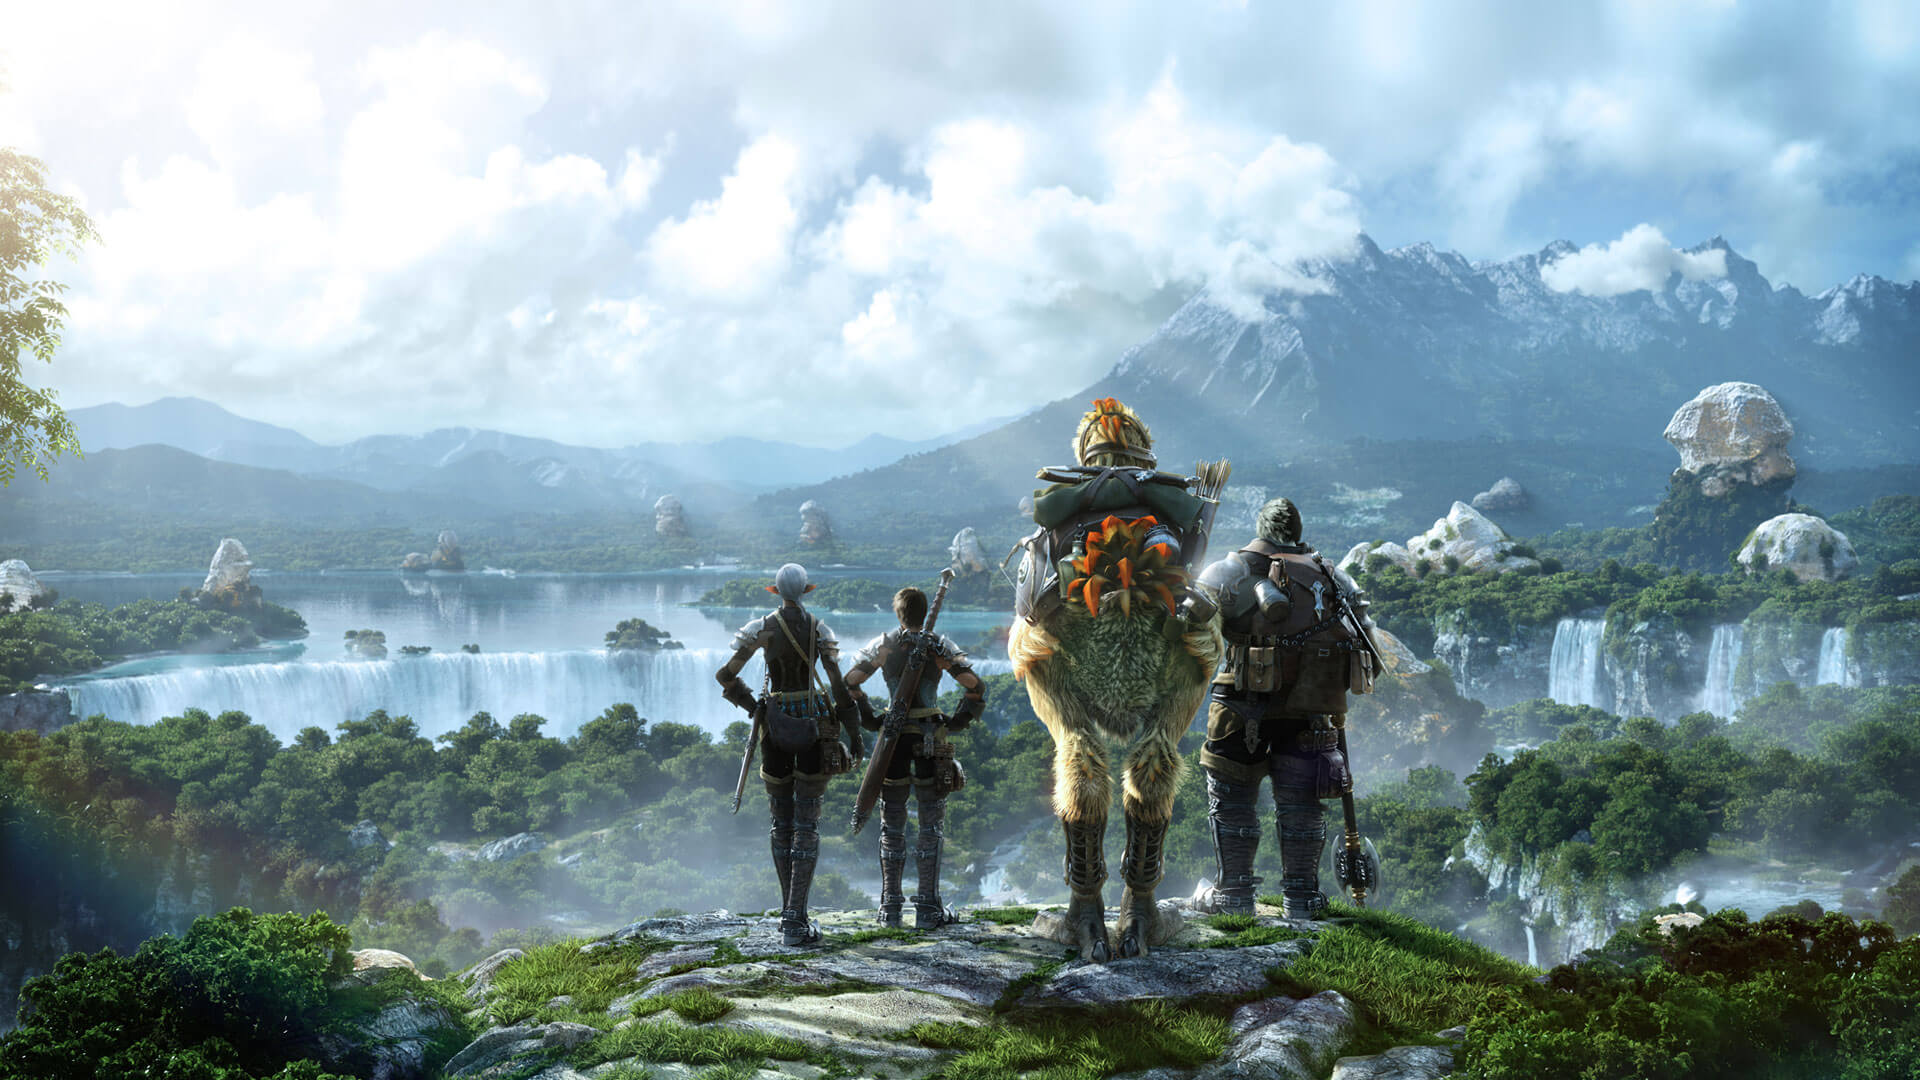 Final Fantasy XIV Reaches 5 Million Player Accounts